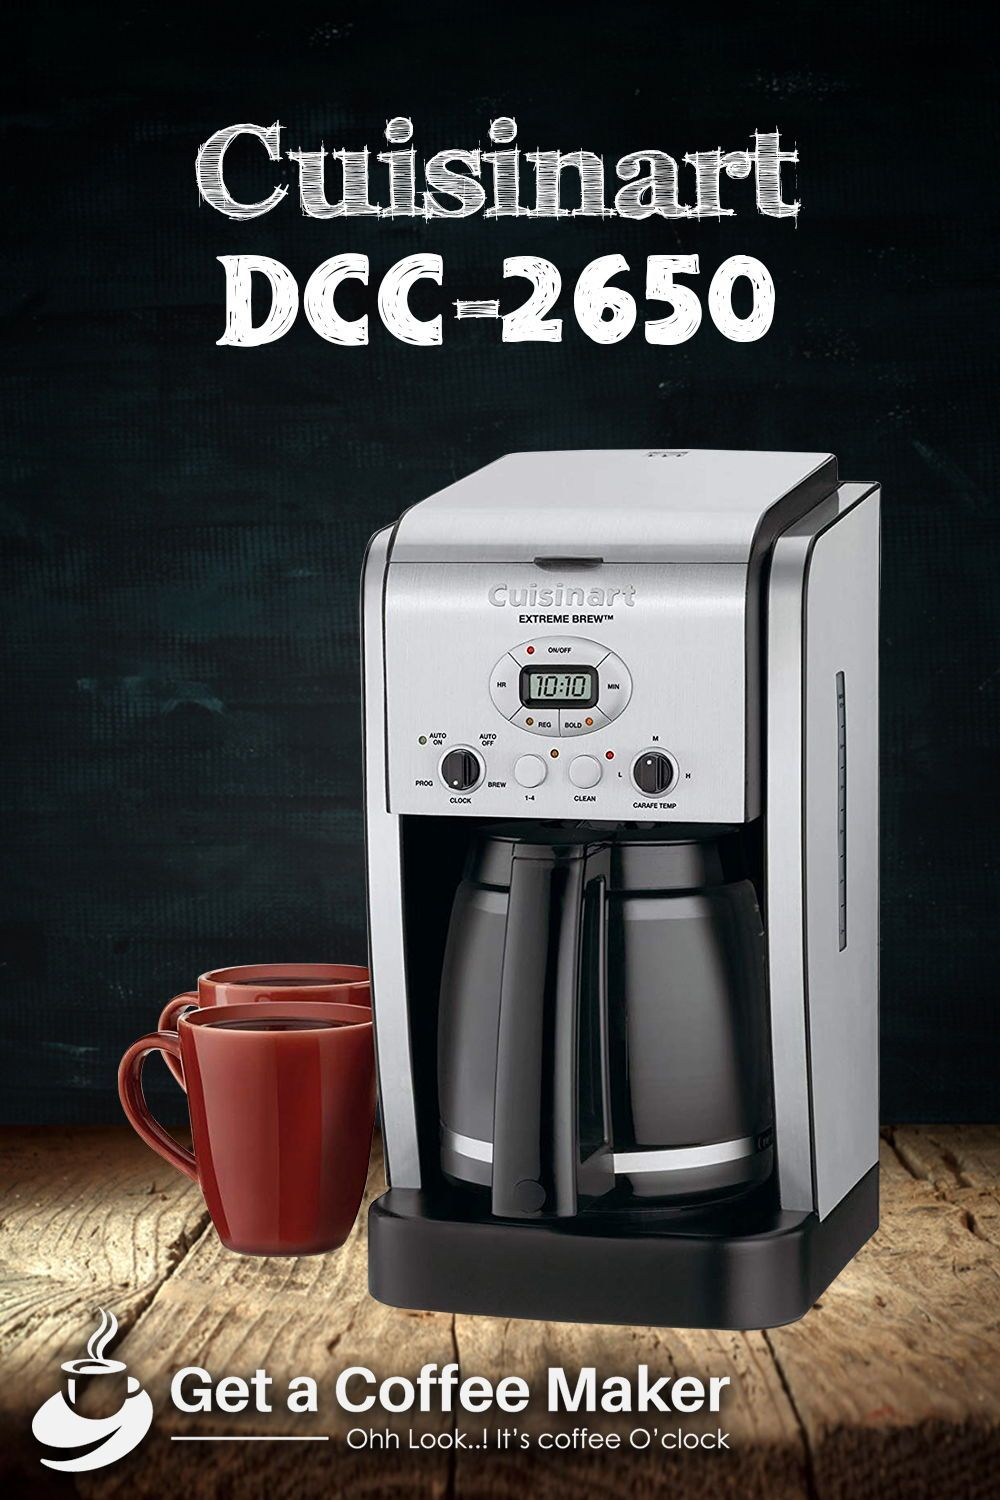 Cuisinart Dcc 2650 Brew Review Coffee Maker Reviews Coffee Maker Brewing